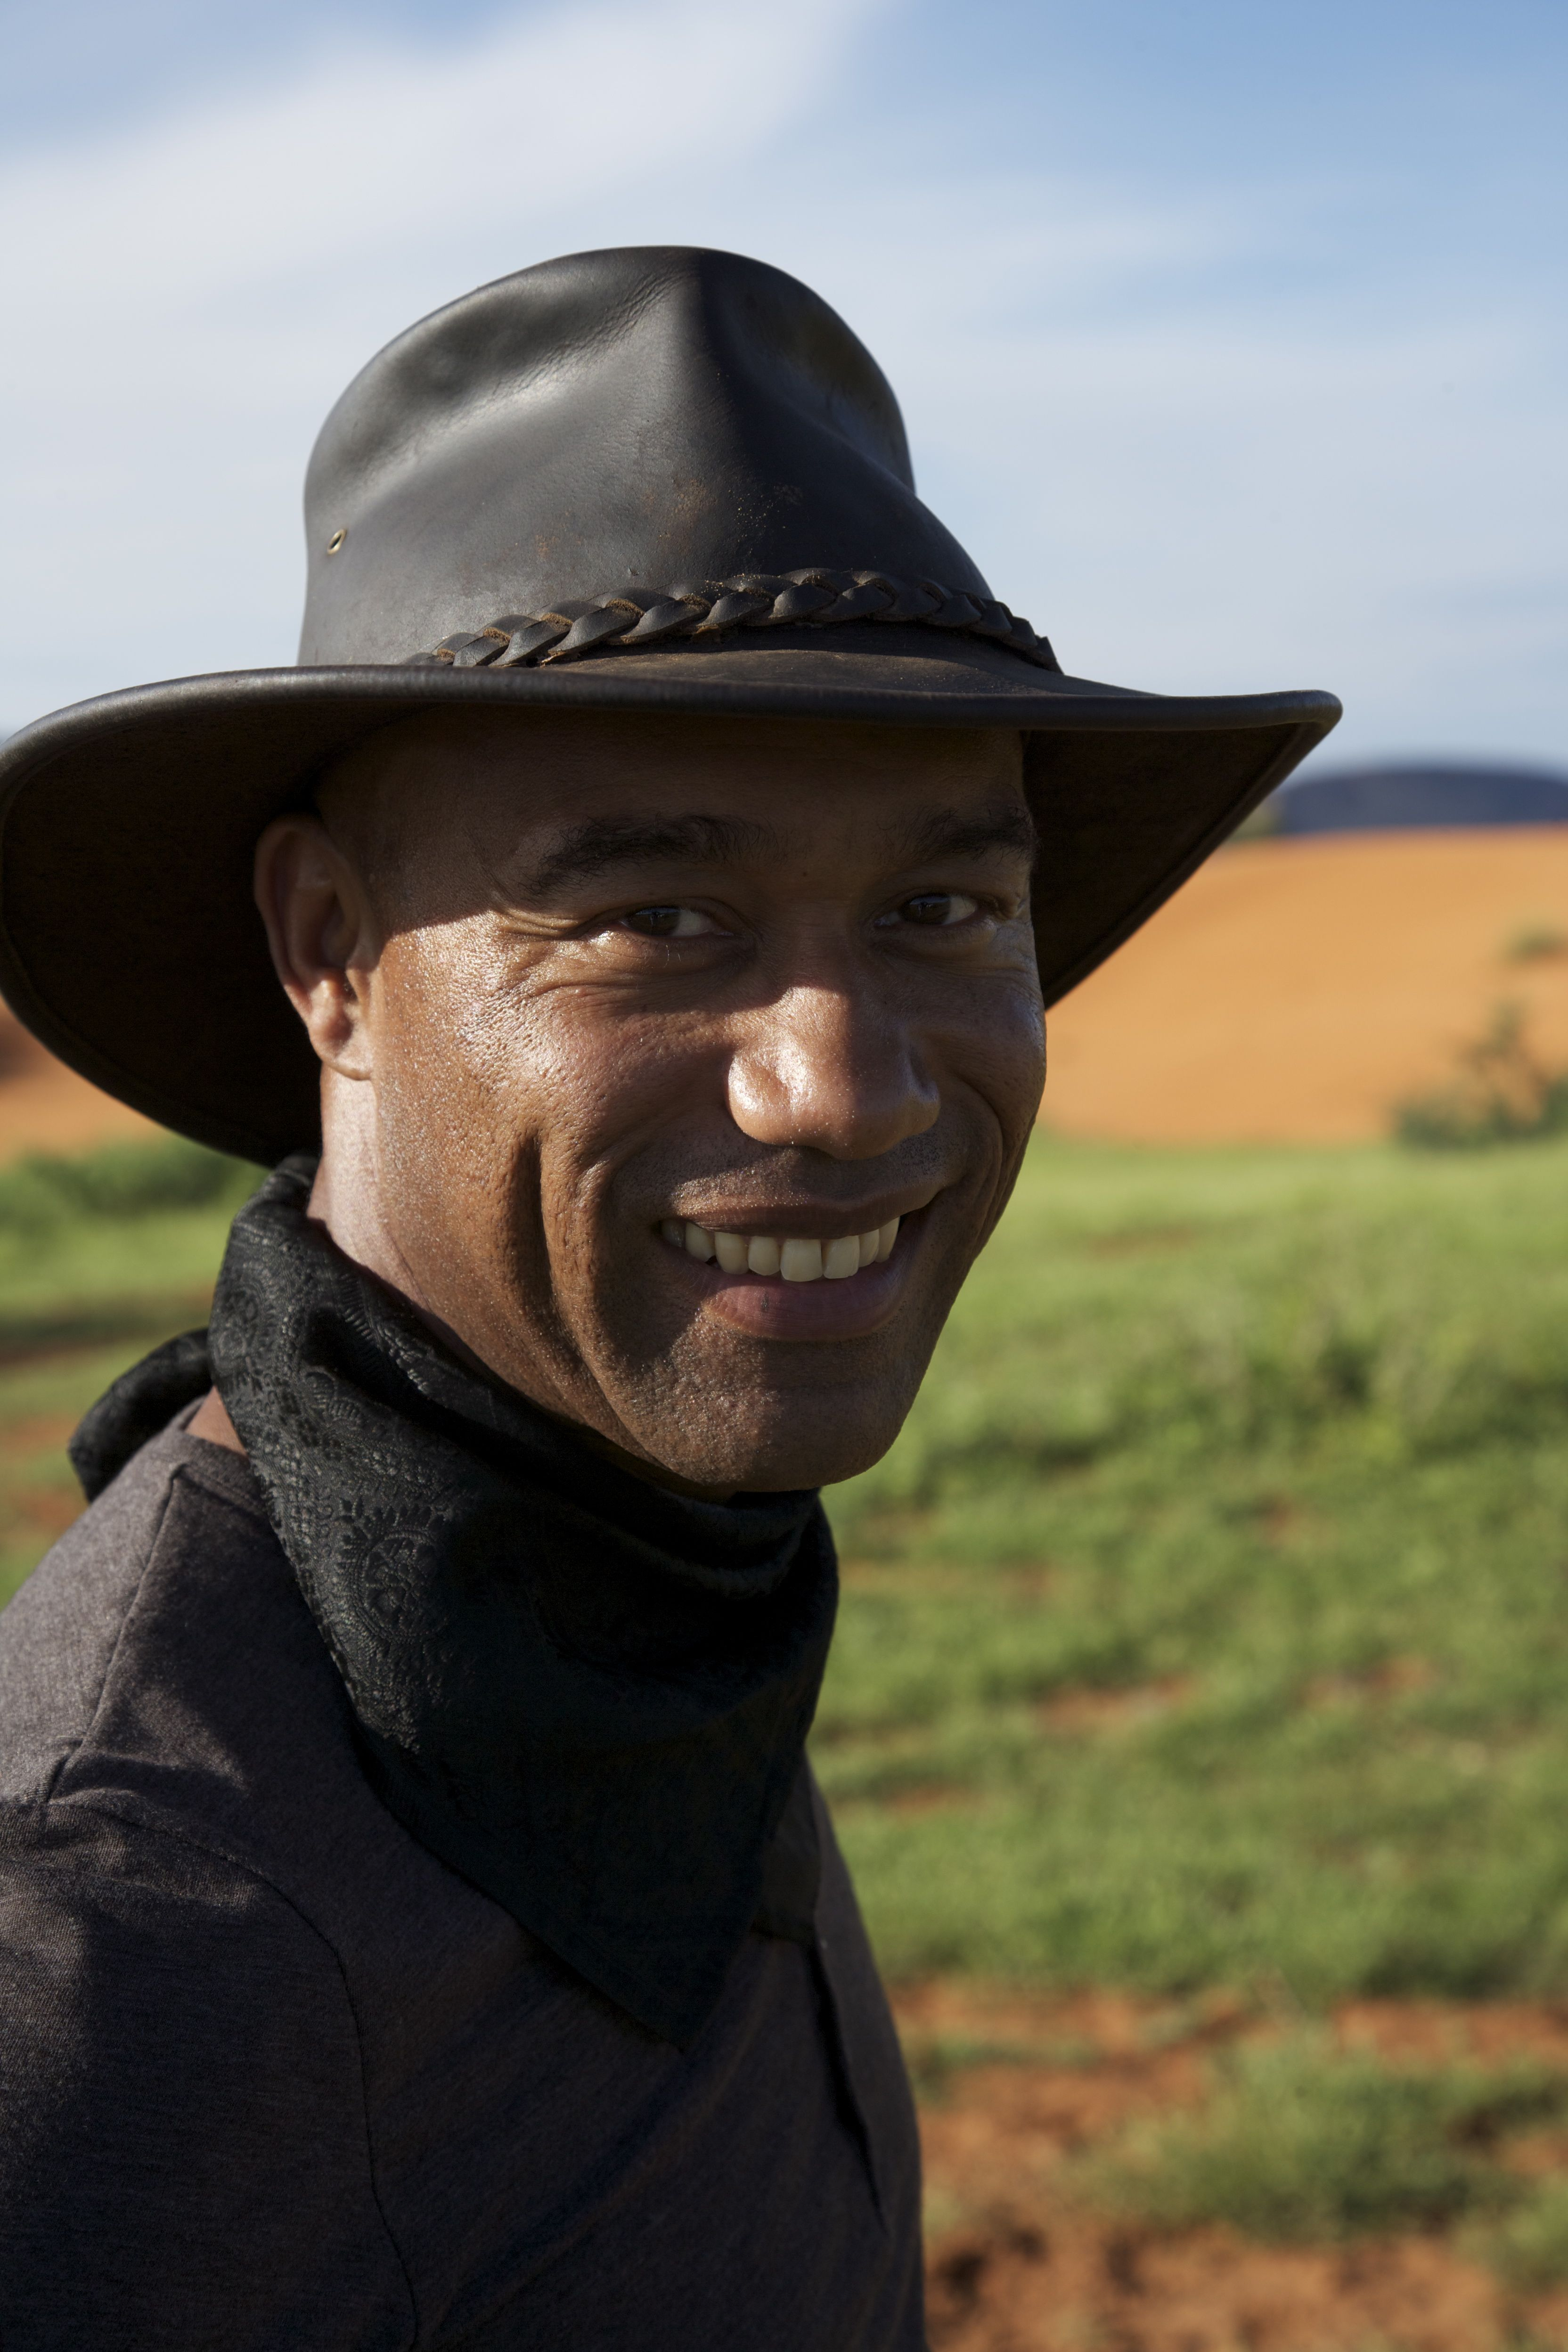 Portrait of Casely-Hayford wearing a hat